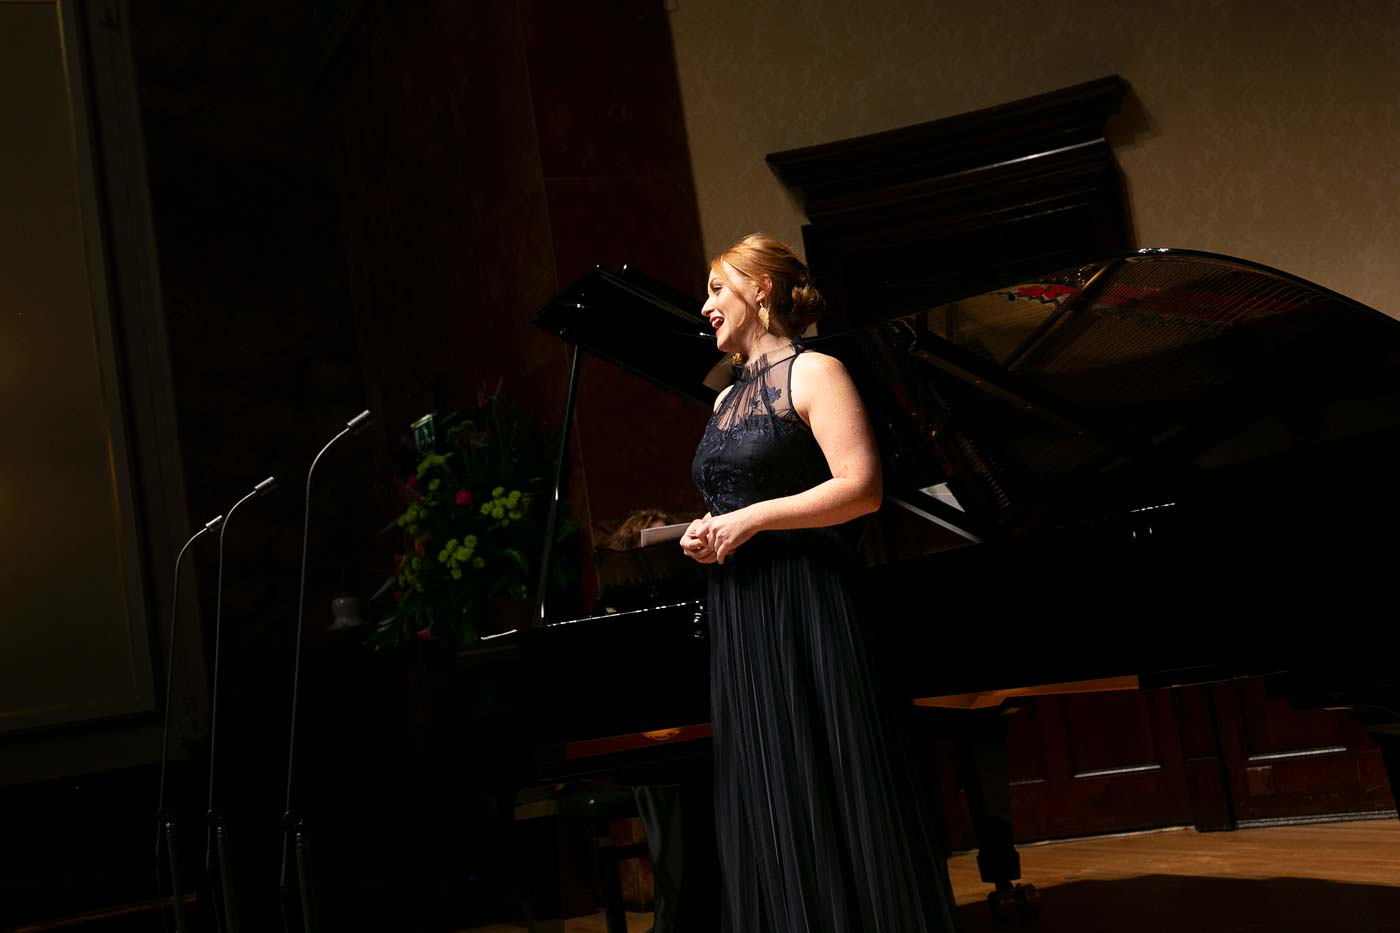 Claire Lees – Concert performance at the Wigmore Hall, 2018